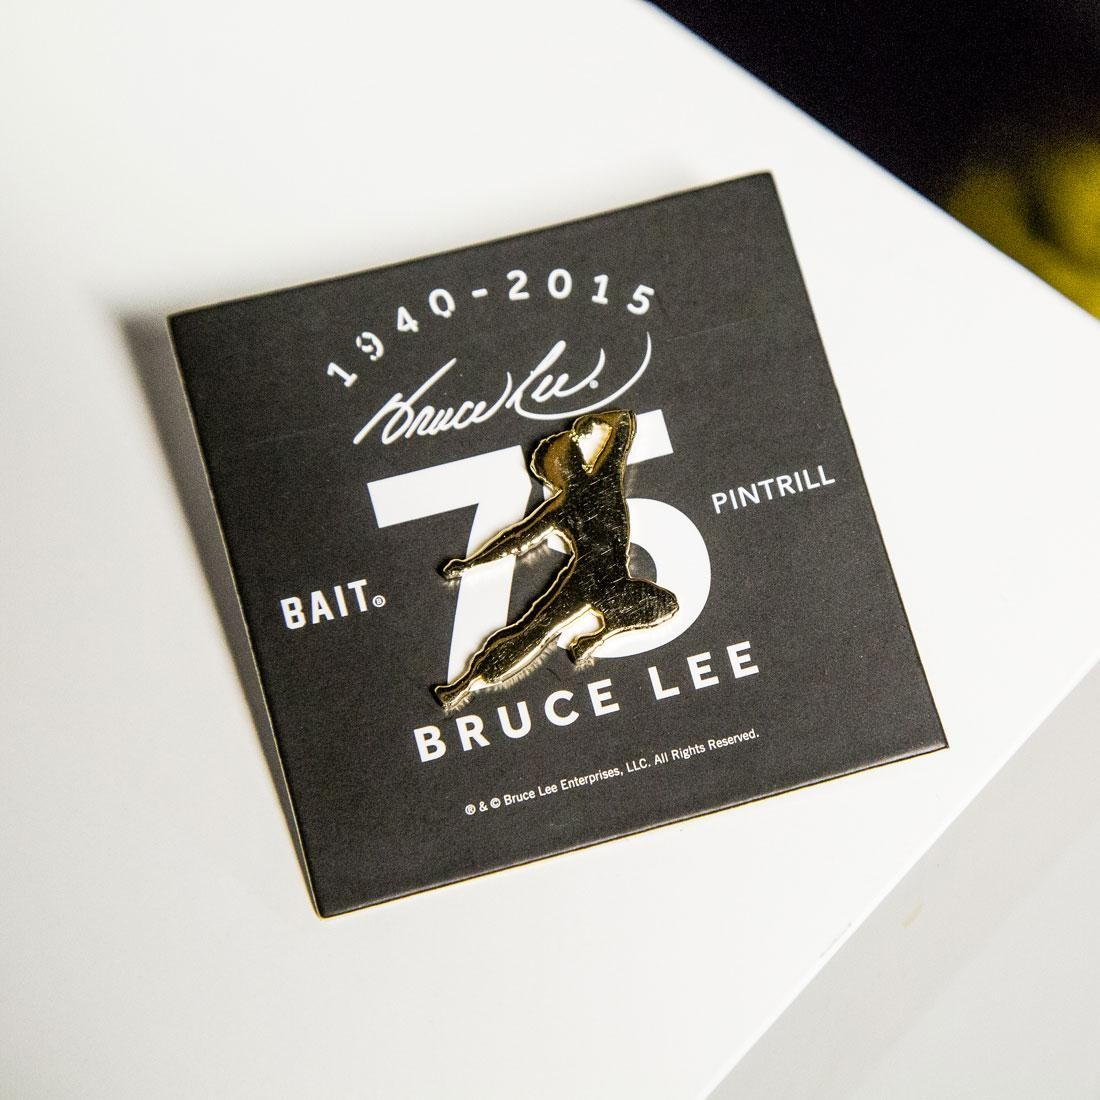 reputable site 8d6f8 e02bf BAIT x Bruce Lee x Pintrill 75th Anniversary Fly Kick Pin (gold)